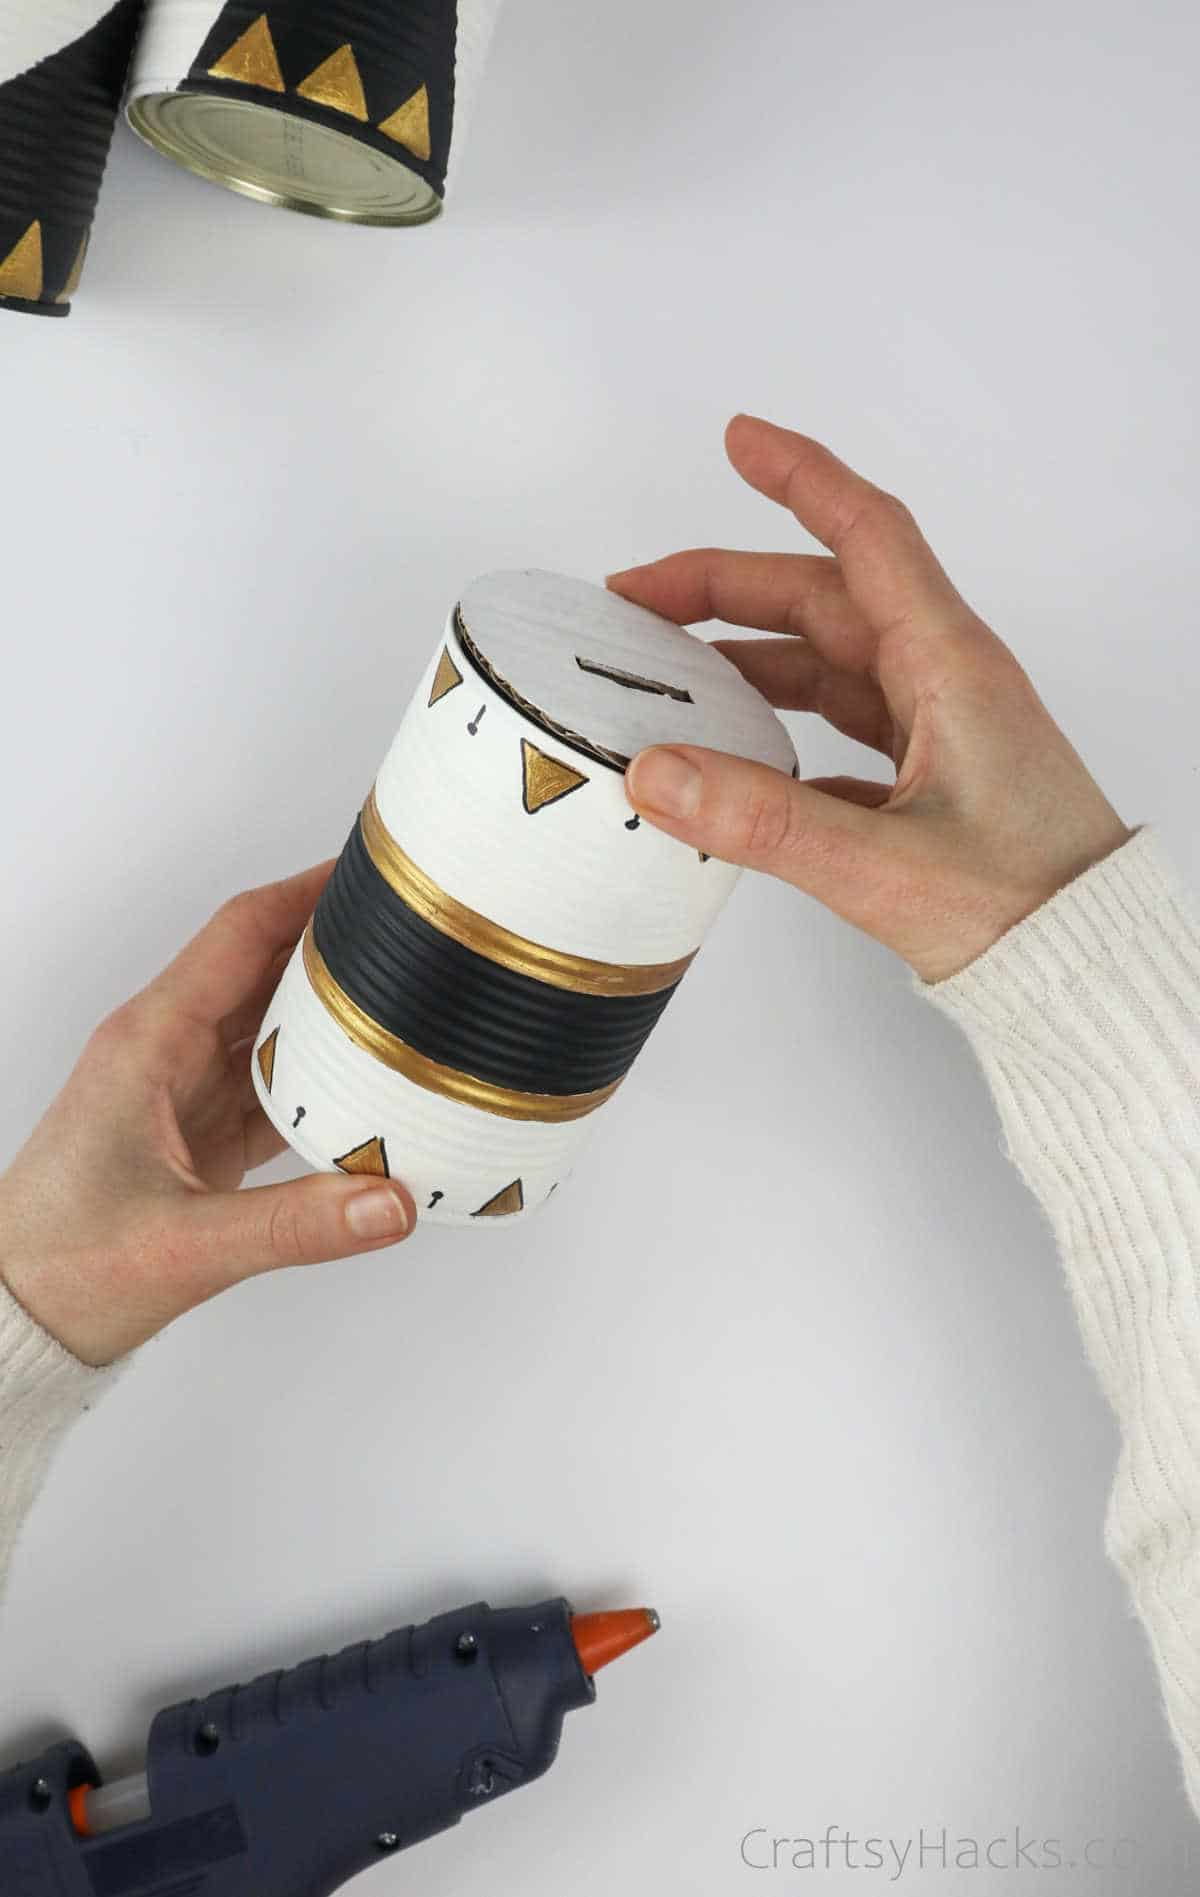 glueing lid to can